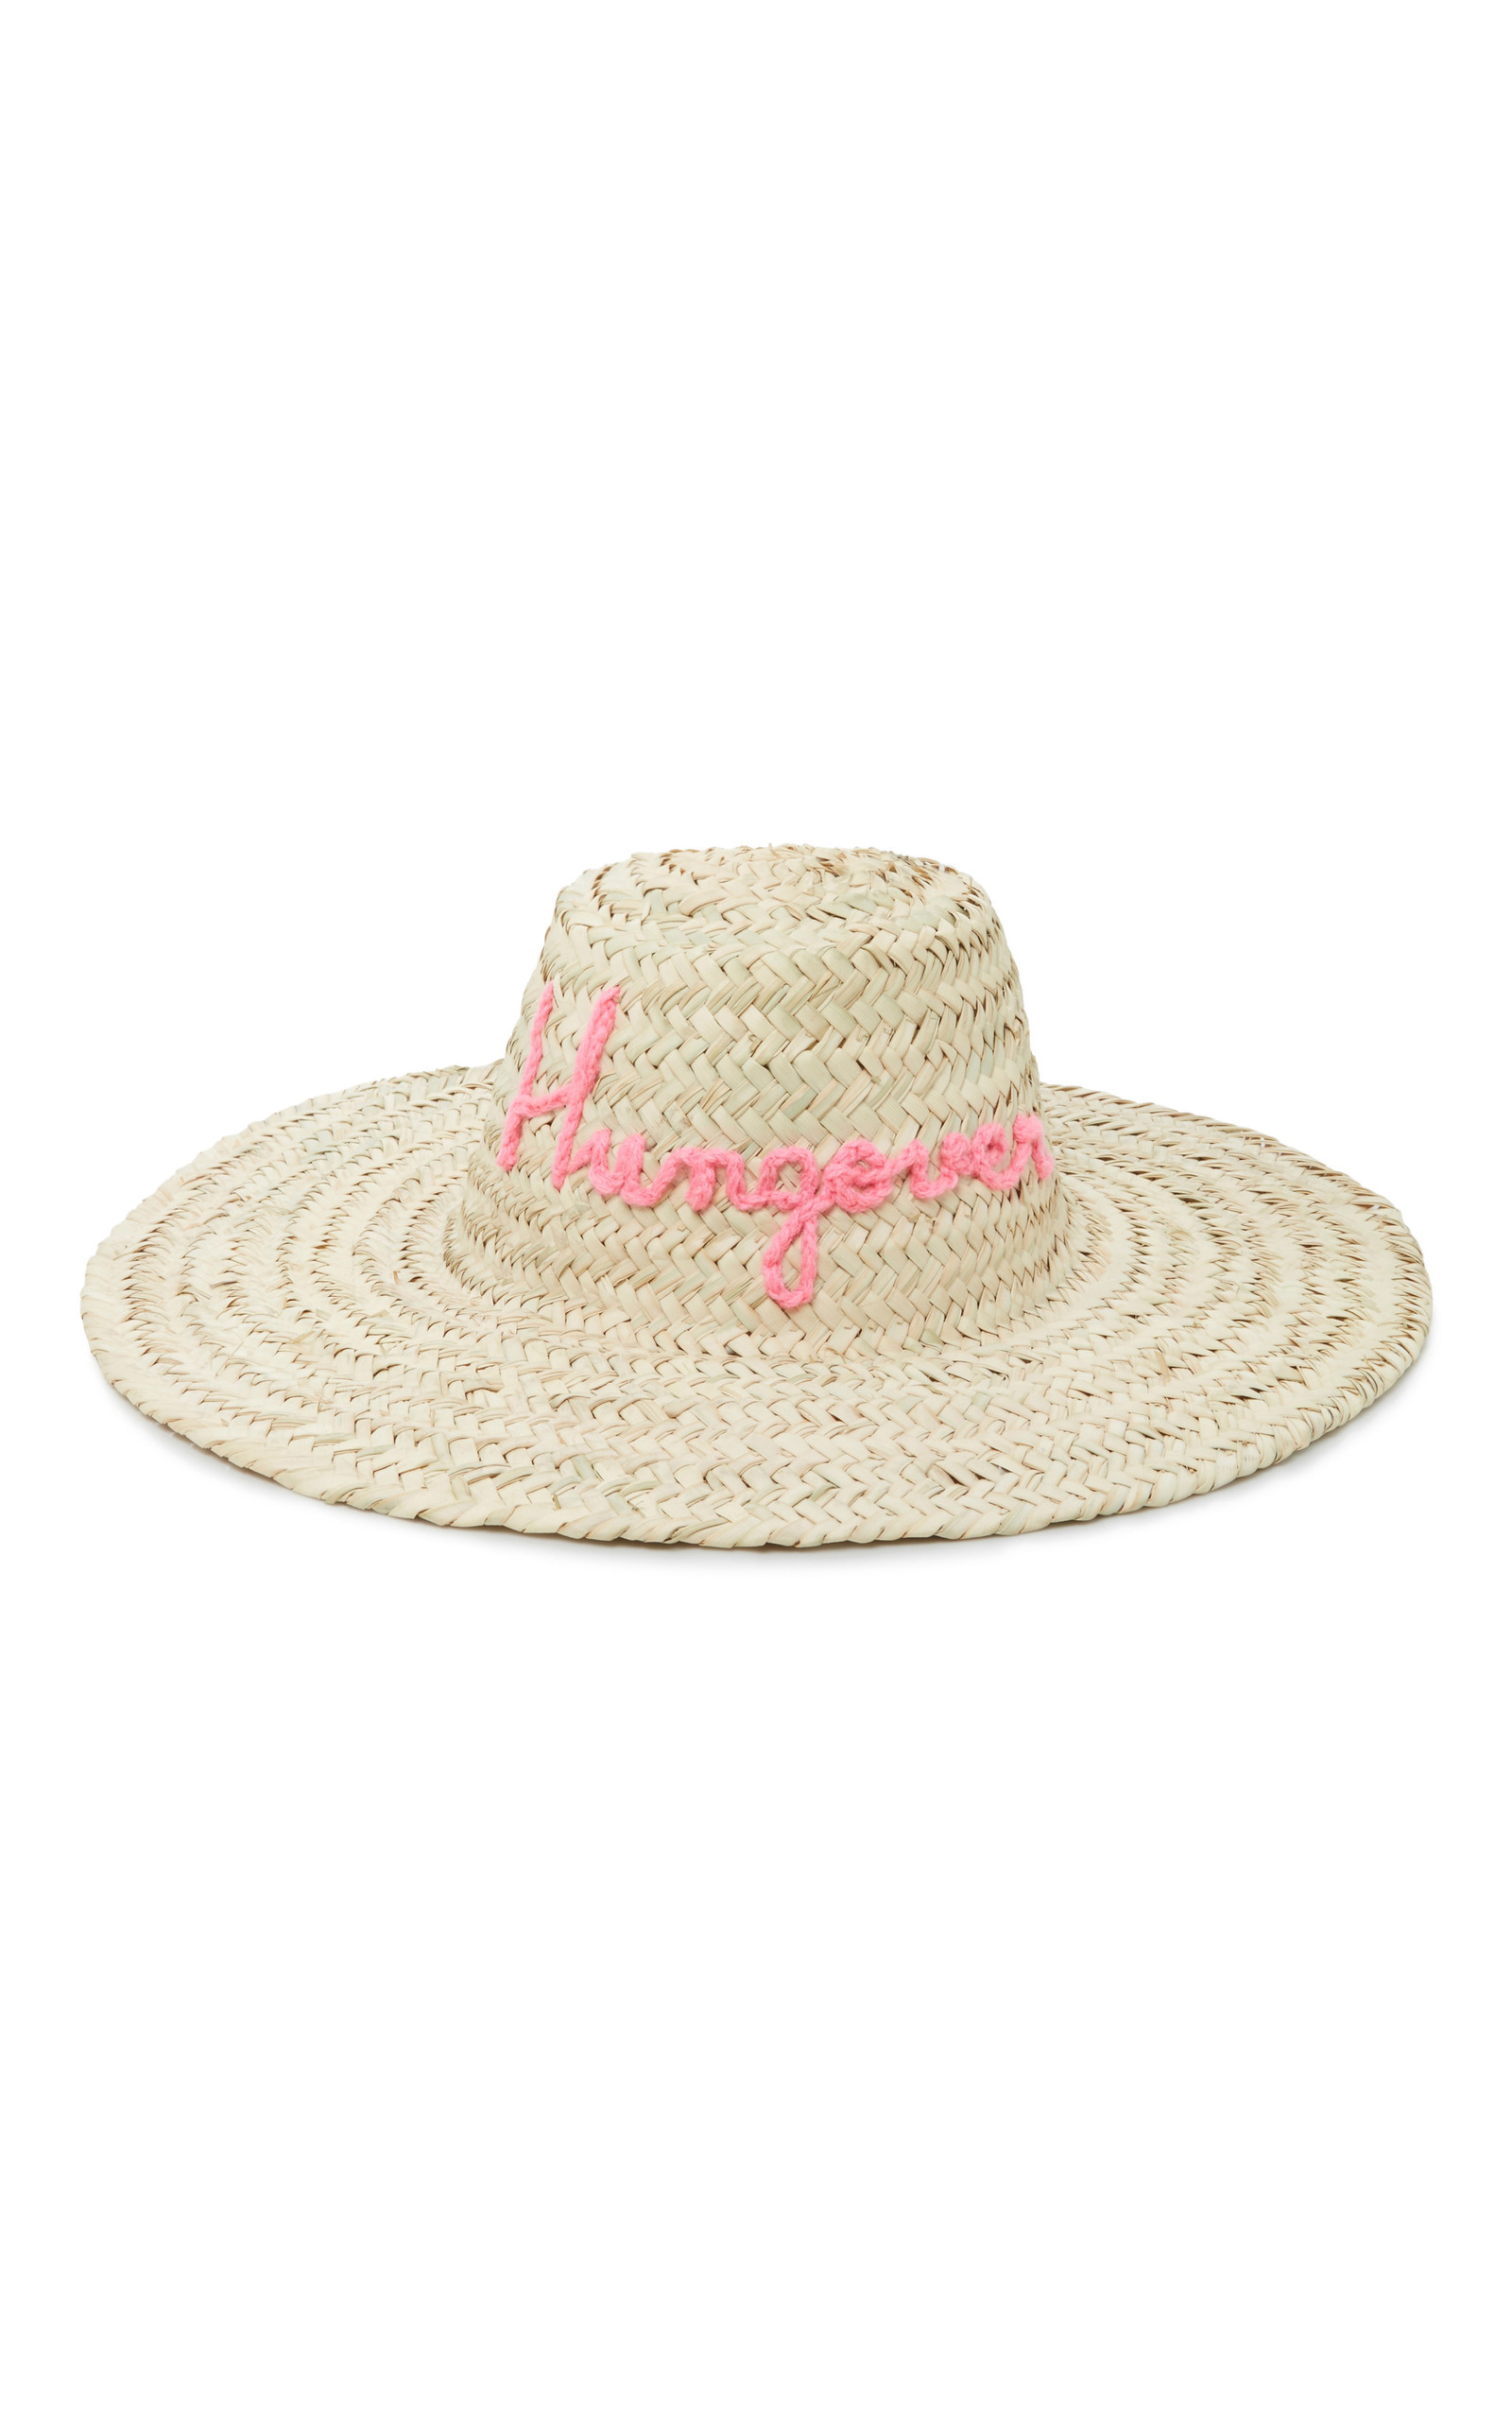 large_we-are-poolside-pink-l-ombre-straw-sunhat.jpg